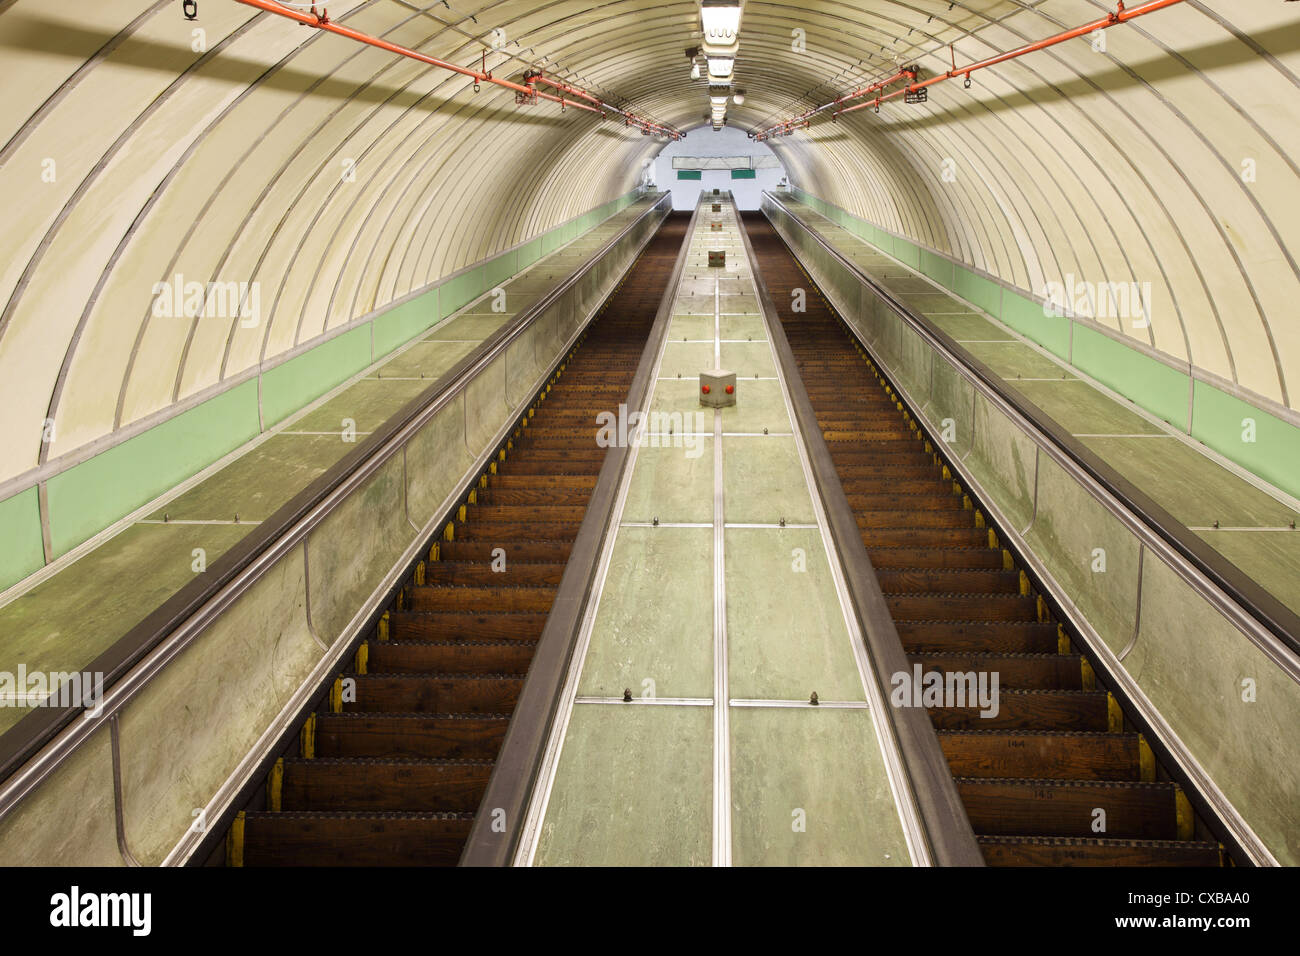 looking-up-the-wooden-escalators-of-the-